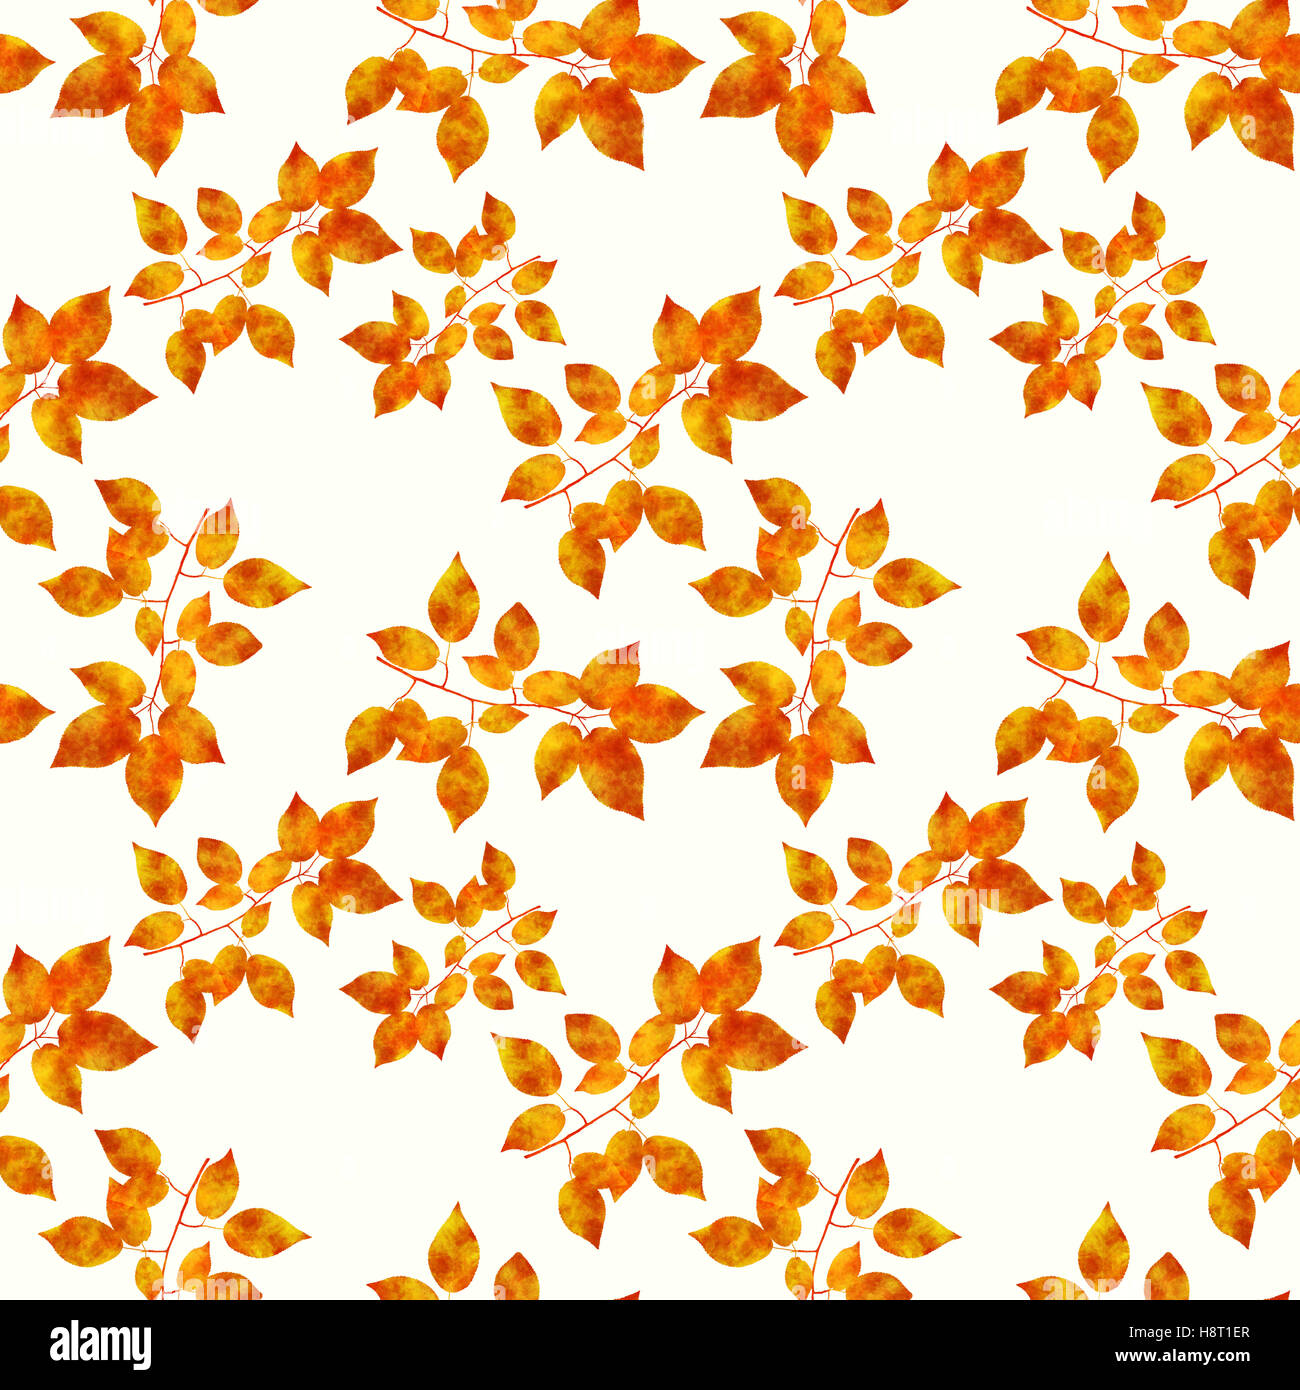 Les feuilles Orange motif transparent Photo Stock